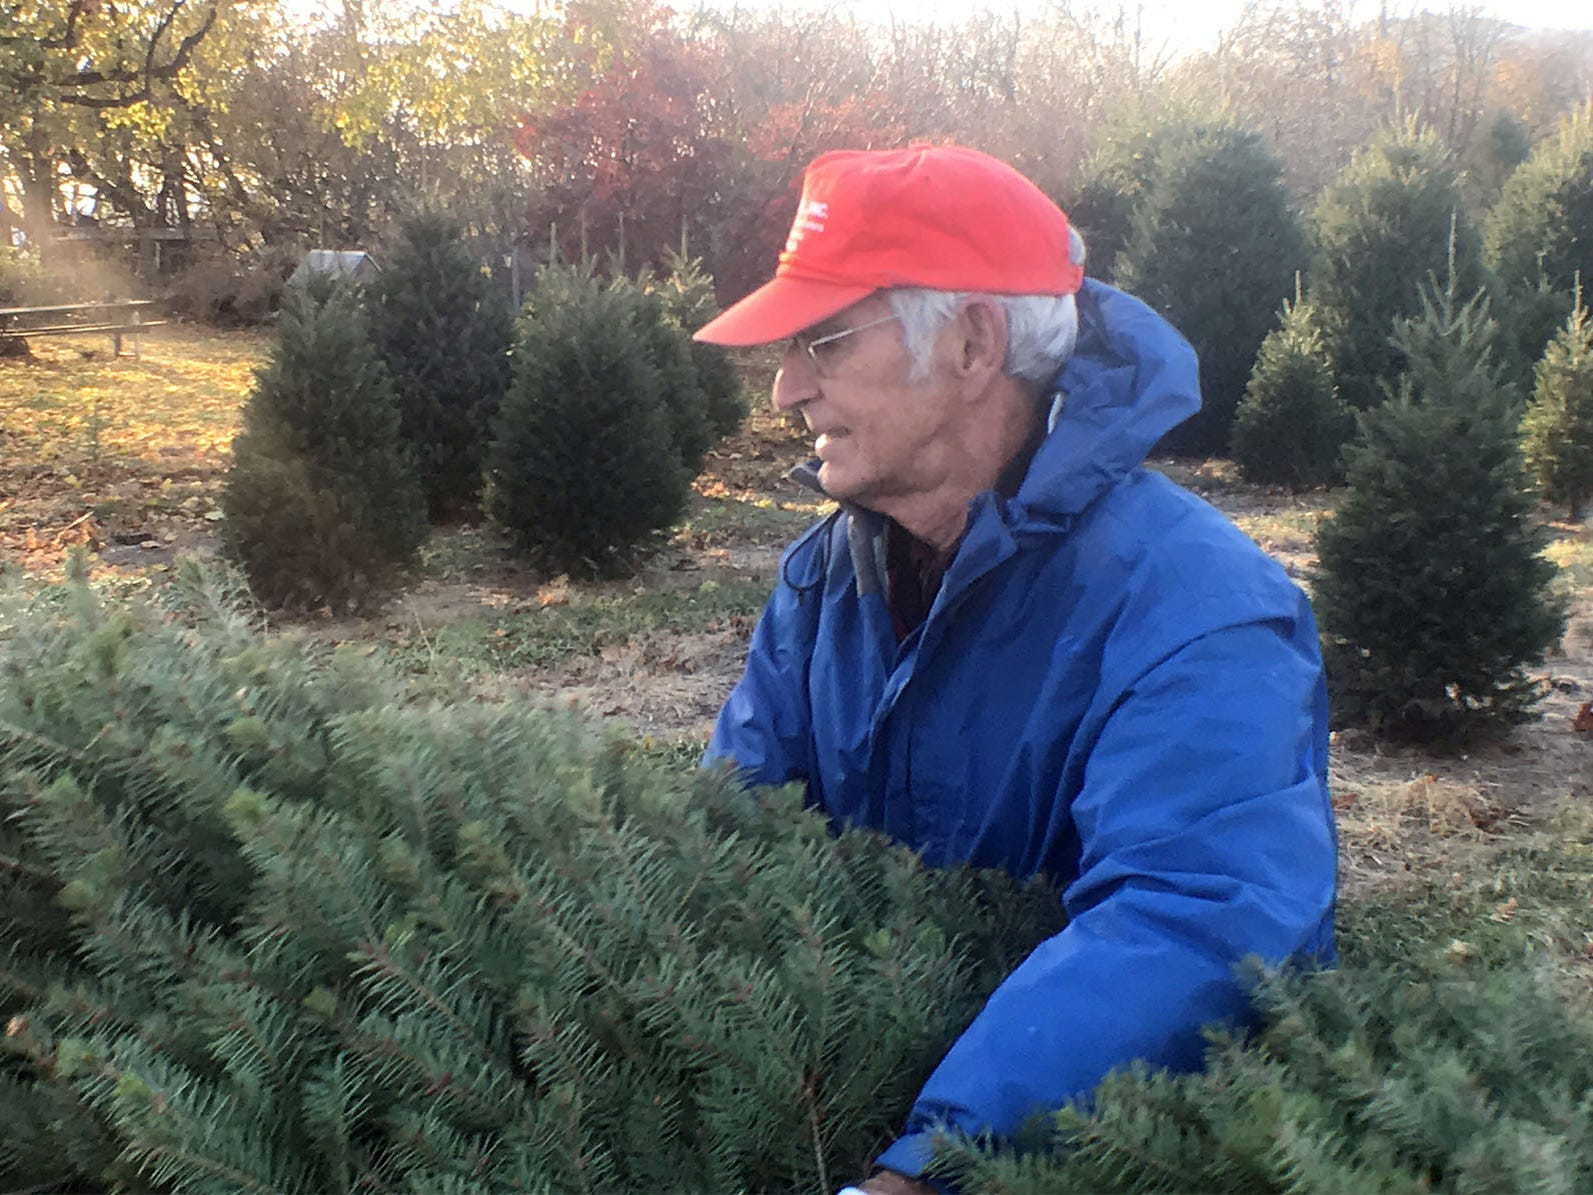 Galen May, owner, packs up Christmas trees for customers on Friday, November 23, 2018 at Pine View Haven Christmas Trees in St. Thomas. For many families, the day after Christmas is the time to buy a tree for the holidays.